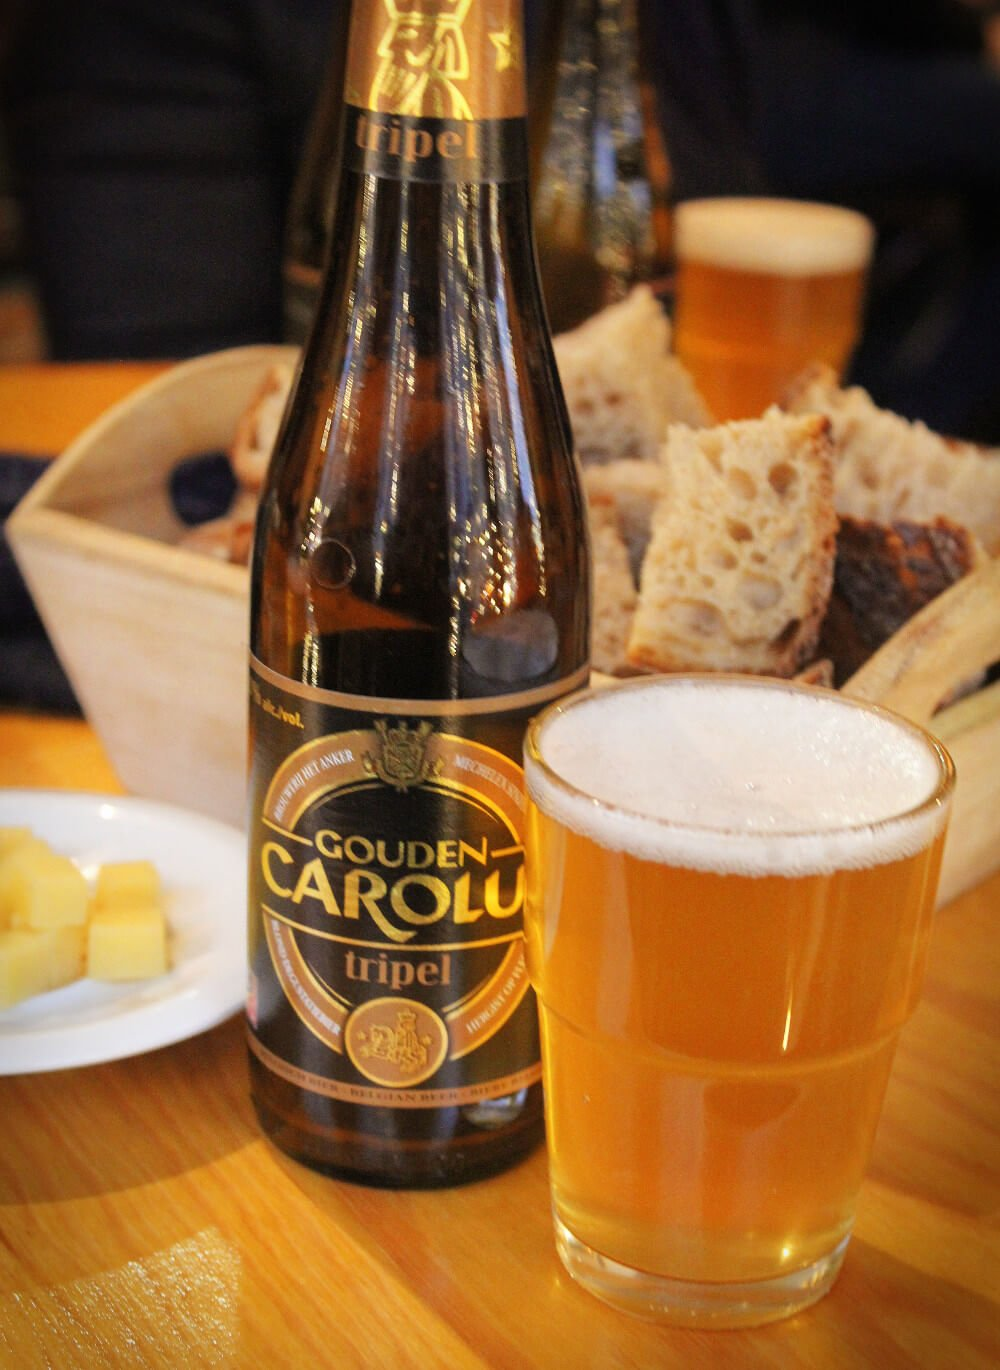 Drinking a tasty Belgian beer with cheese and bread. Not in a Belgian bar, mind you, this is actually in a Belgian beer store. Awesome, right?